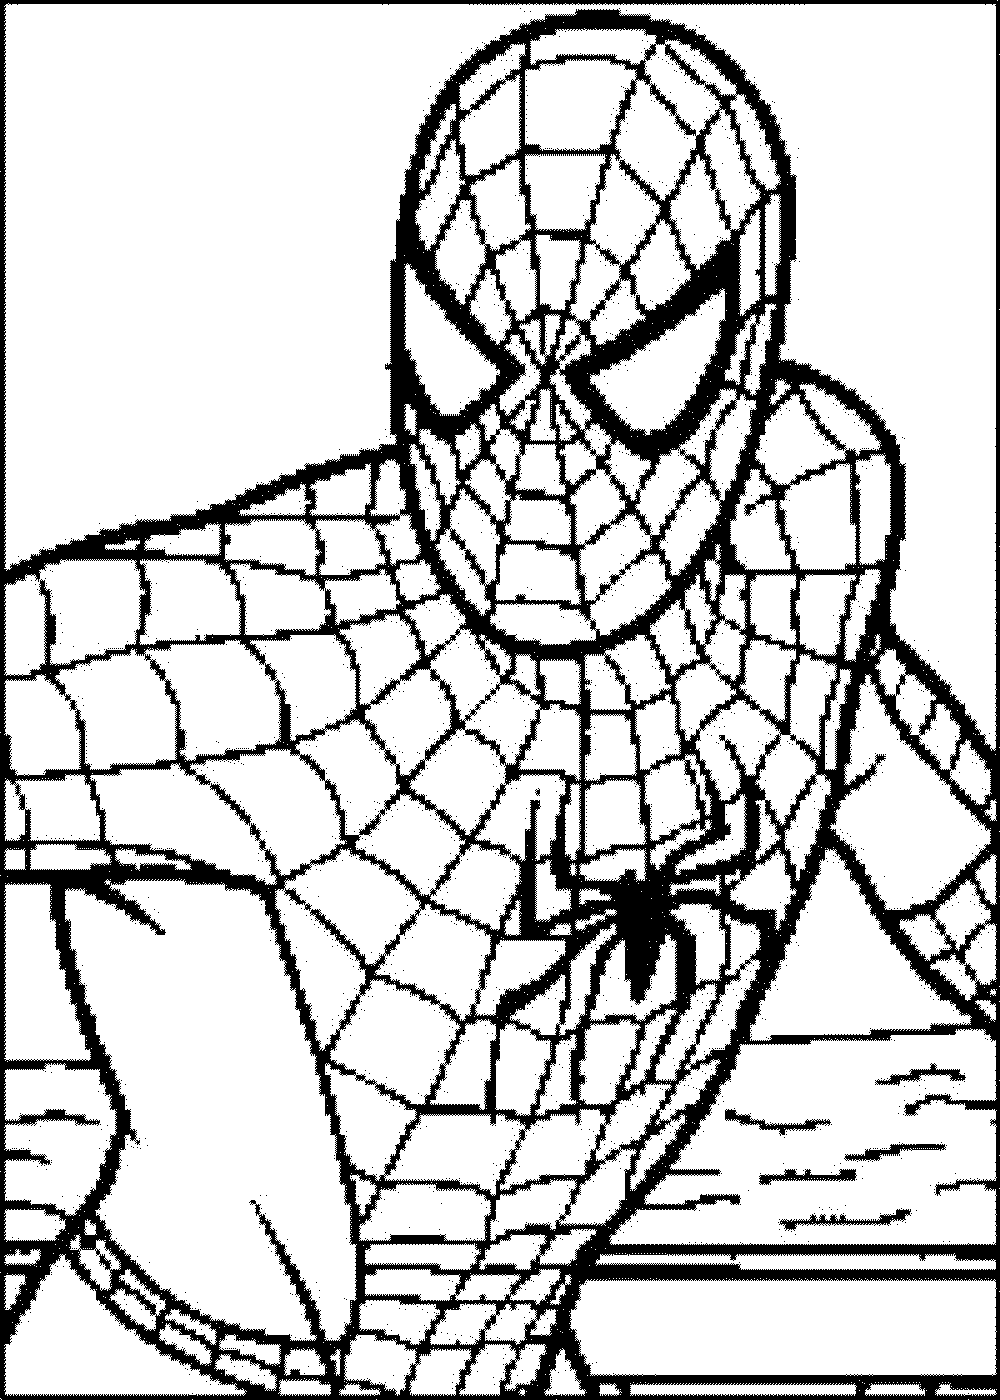 coloring spiderman color spiderman to print for free spiderman kids coloring pages spiderman color coloring